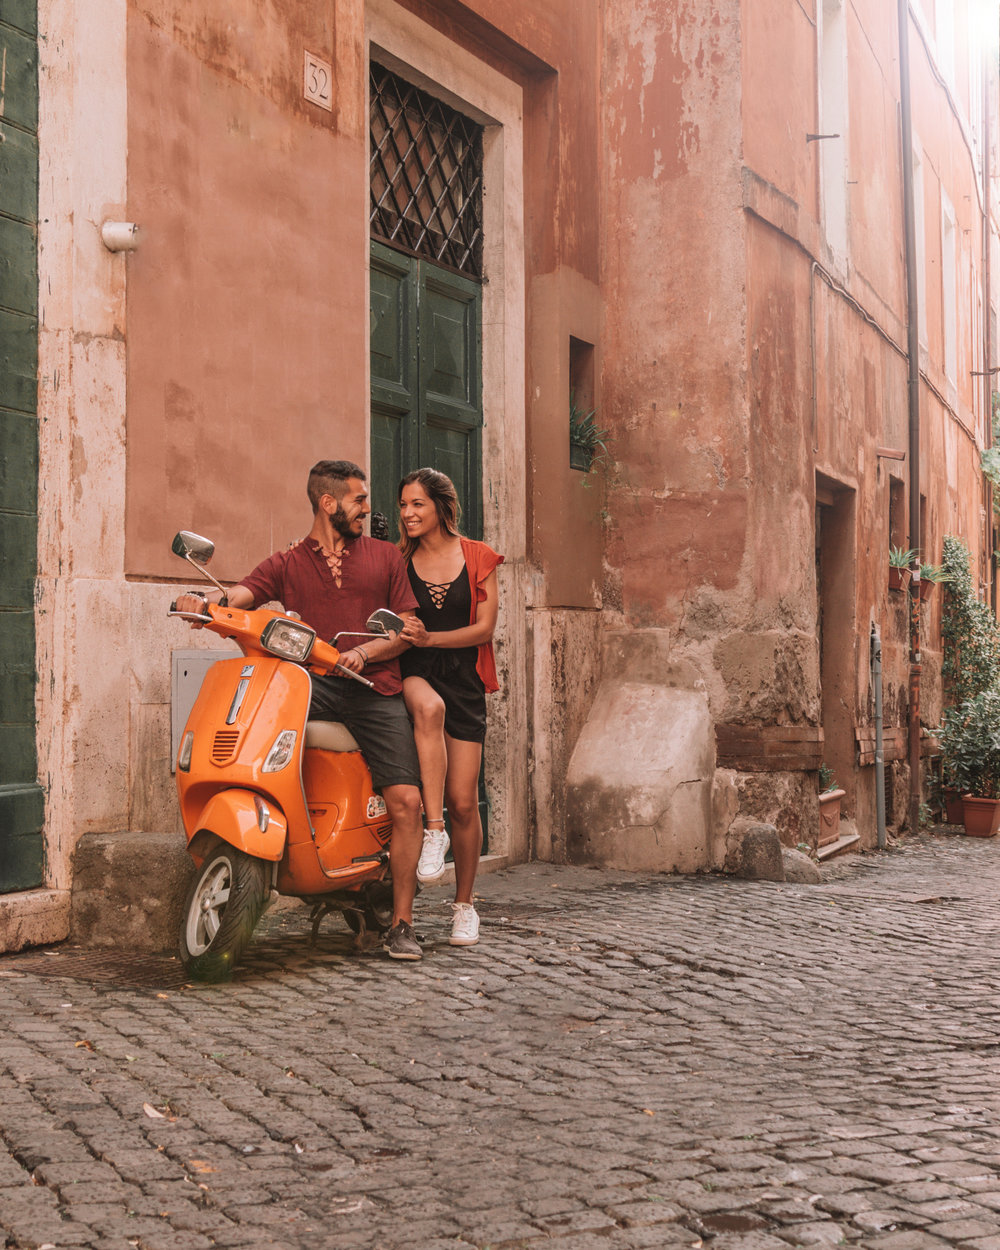 vespa rome italy travel couple trastevere best places to see things to do culture photography instagrammable